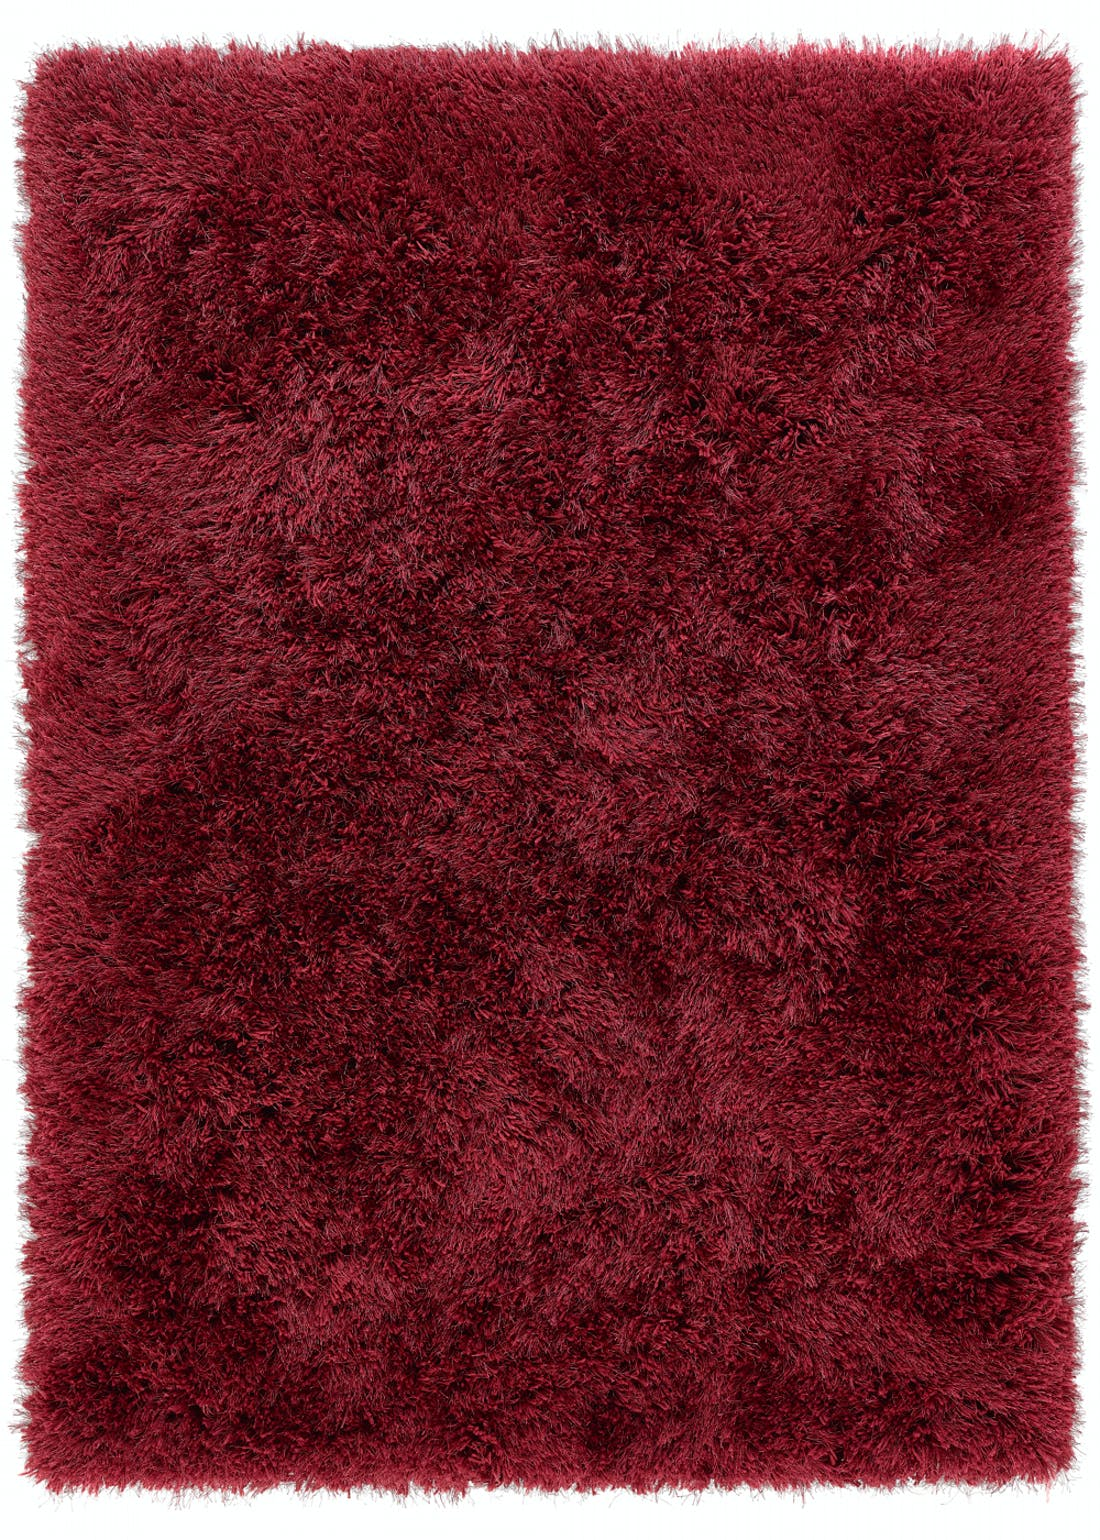 Origins Wine Luxury Rug